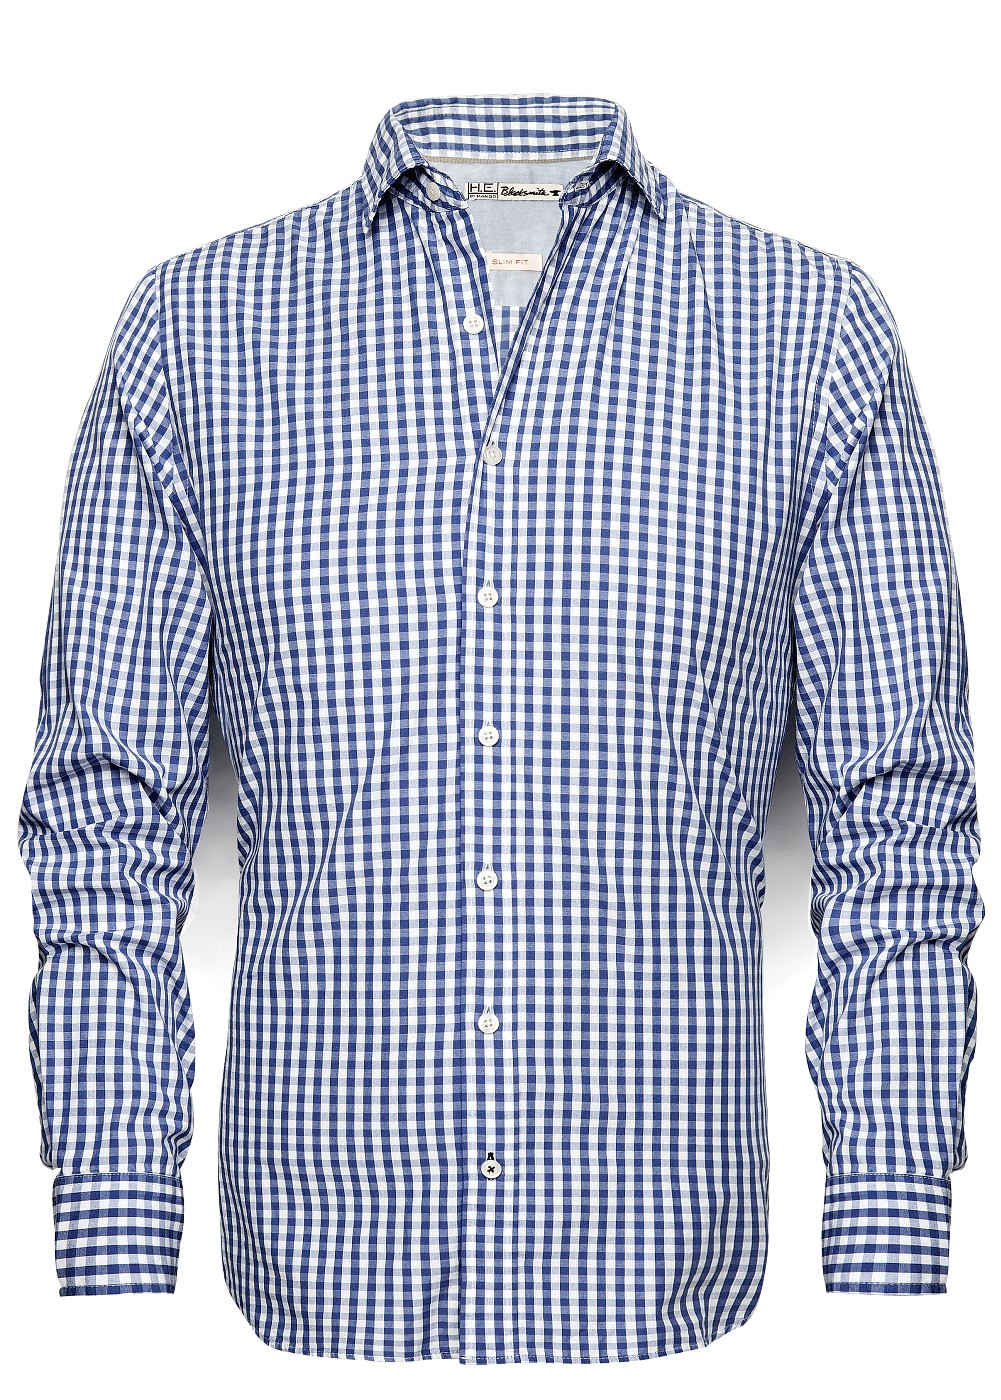 Mango slimfit gingham check shirt in blue for men navy for Mens blue gingham shirt